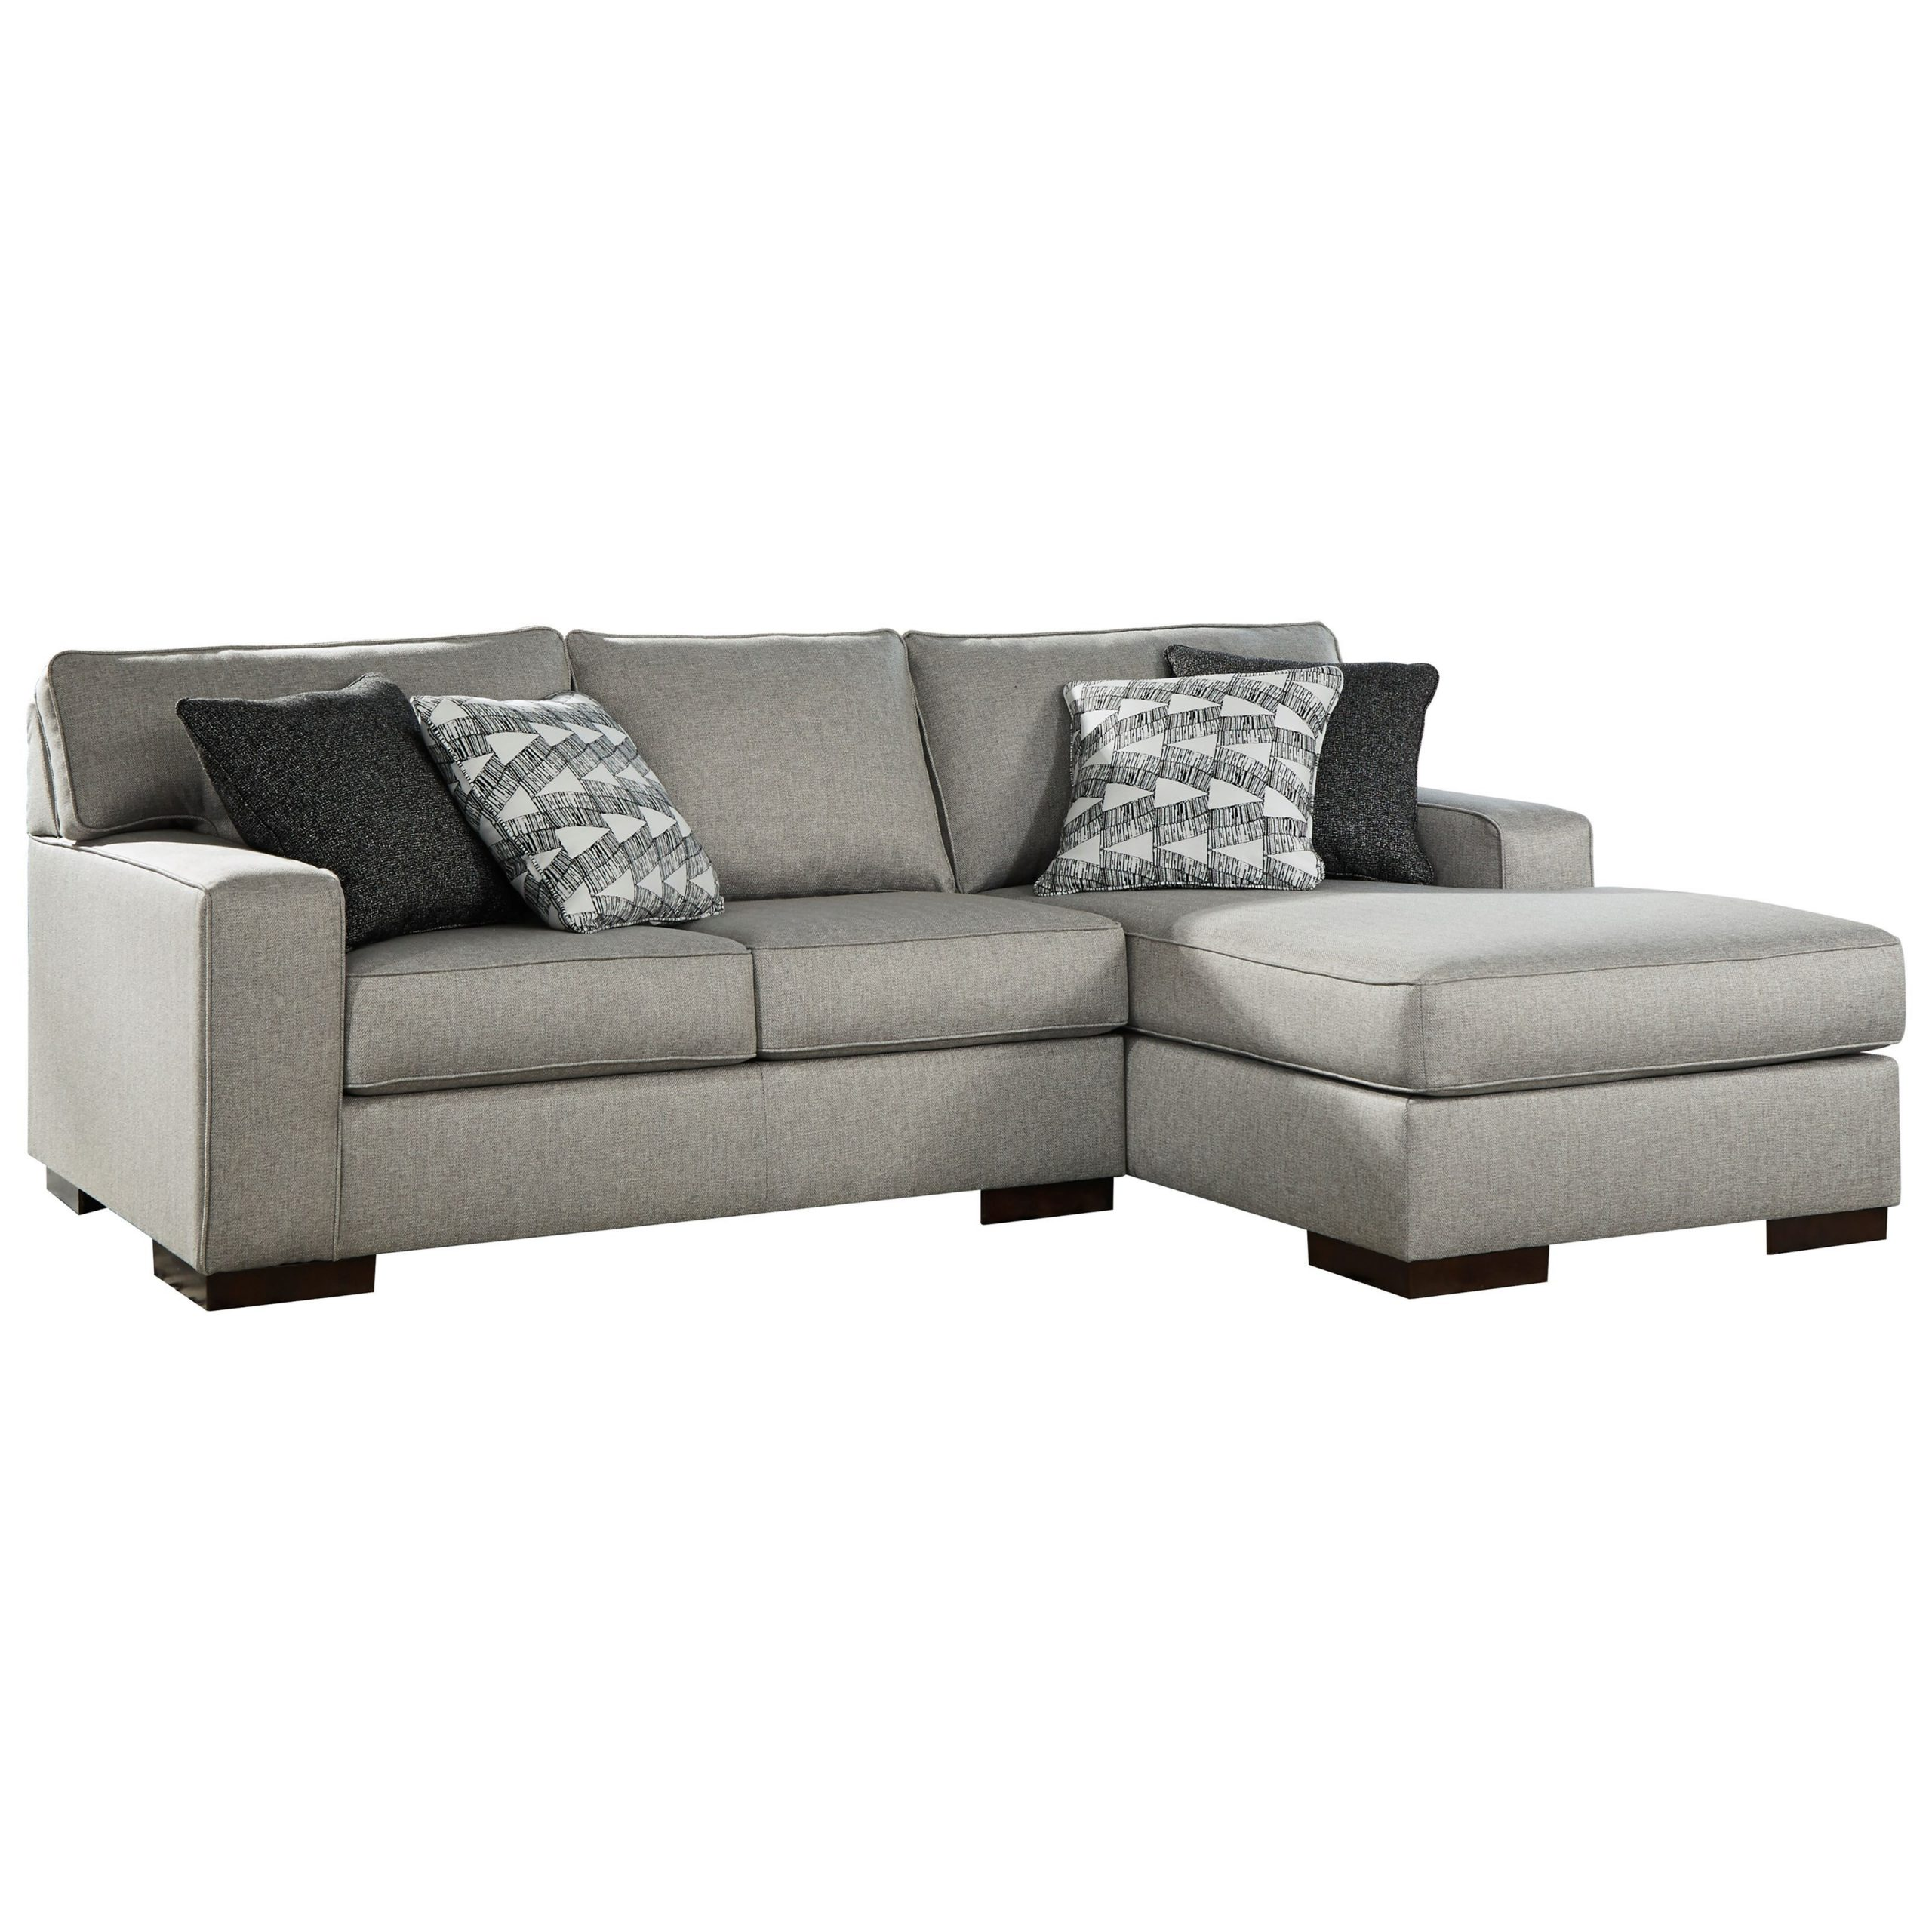 Duluth Mn Sectional Soffor